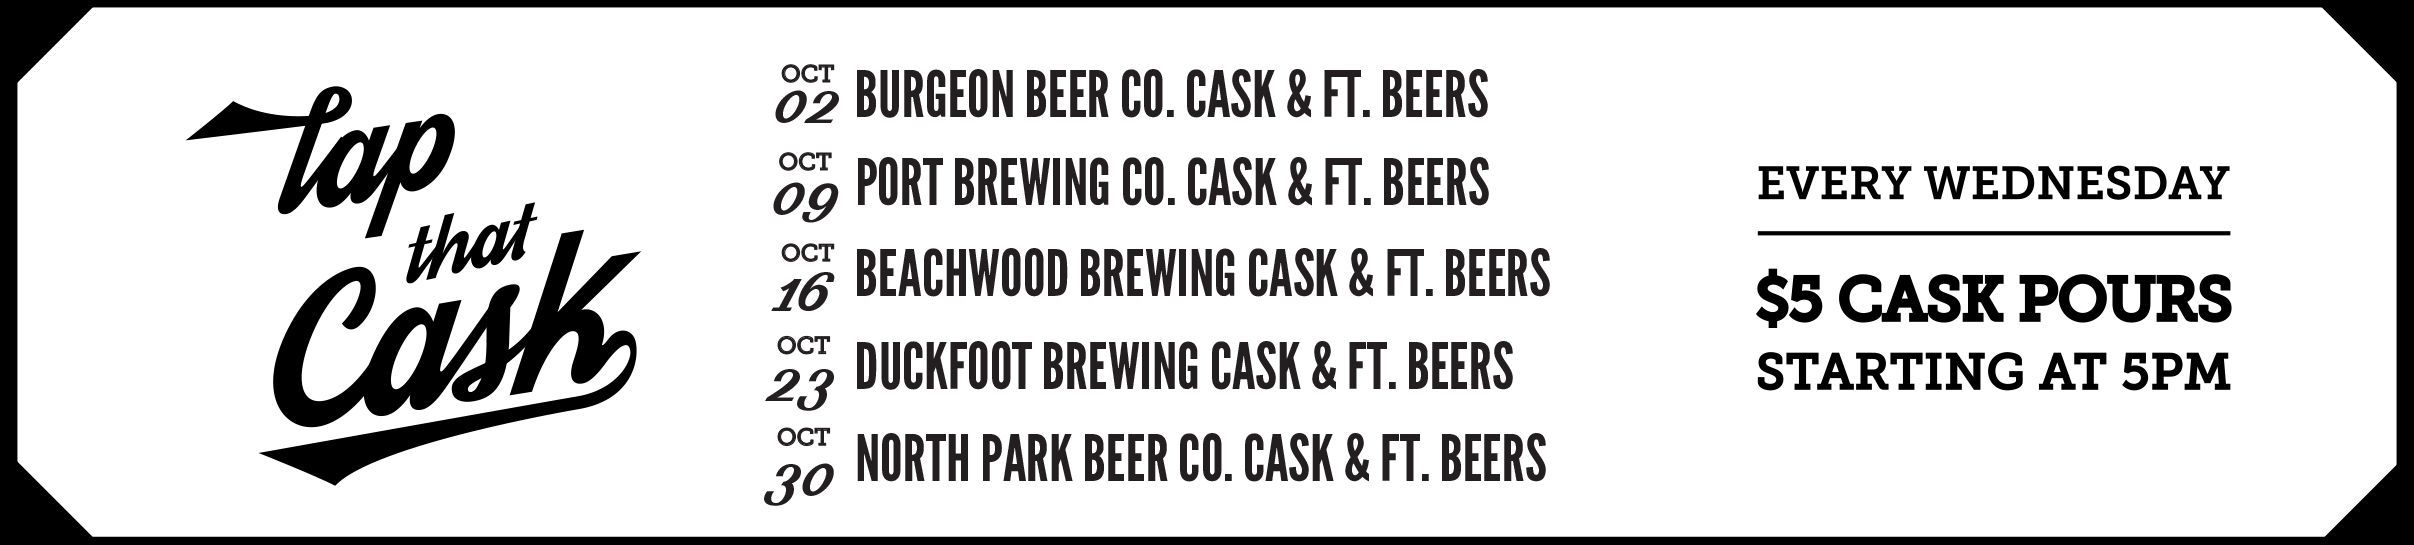 Tap That Cask - October 2019